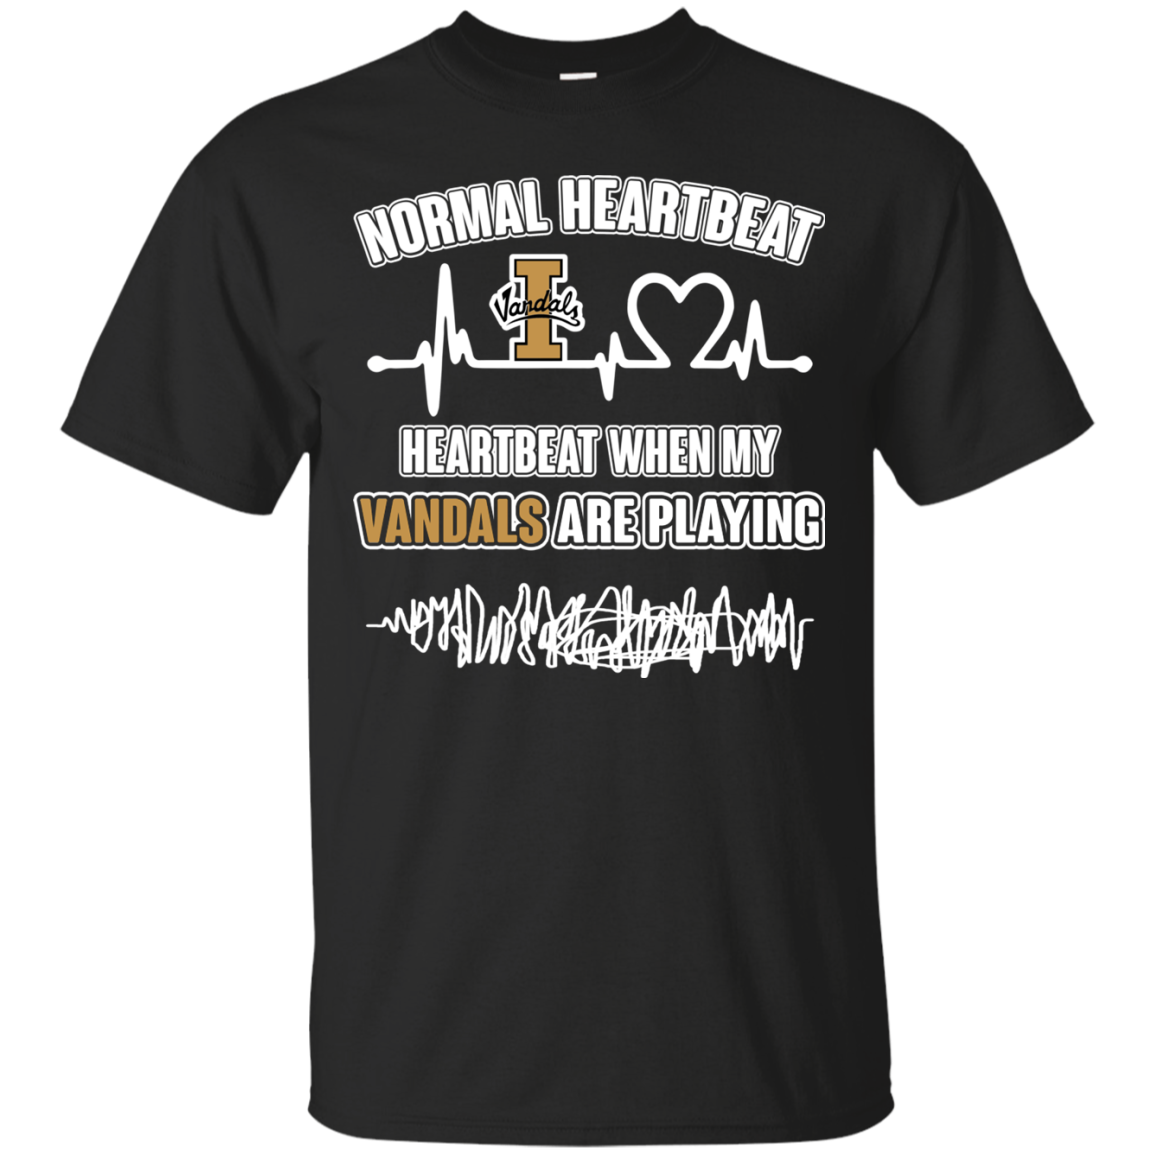 Idaho Vandals Heartbeat When My Vandals Playing S S Shirts